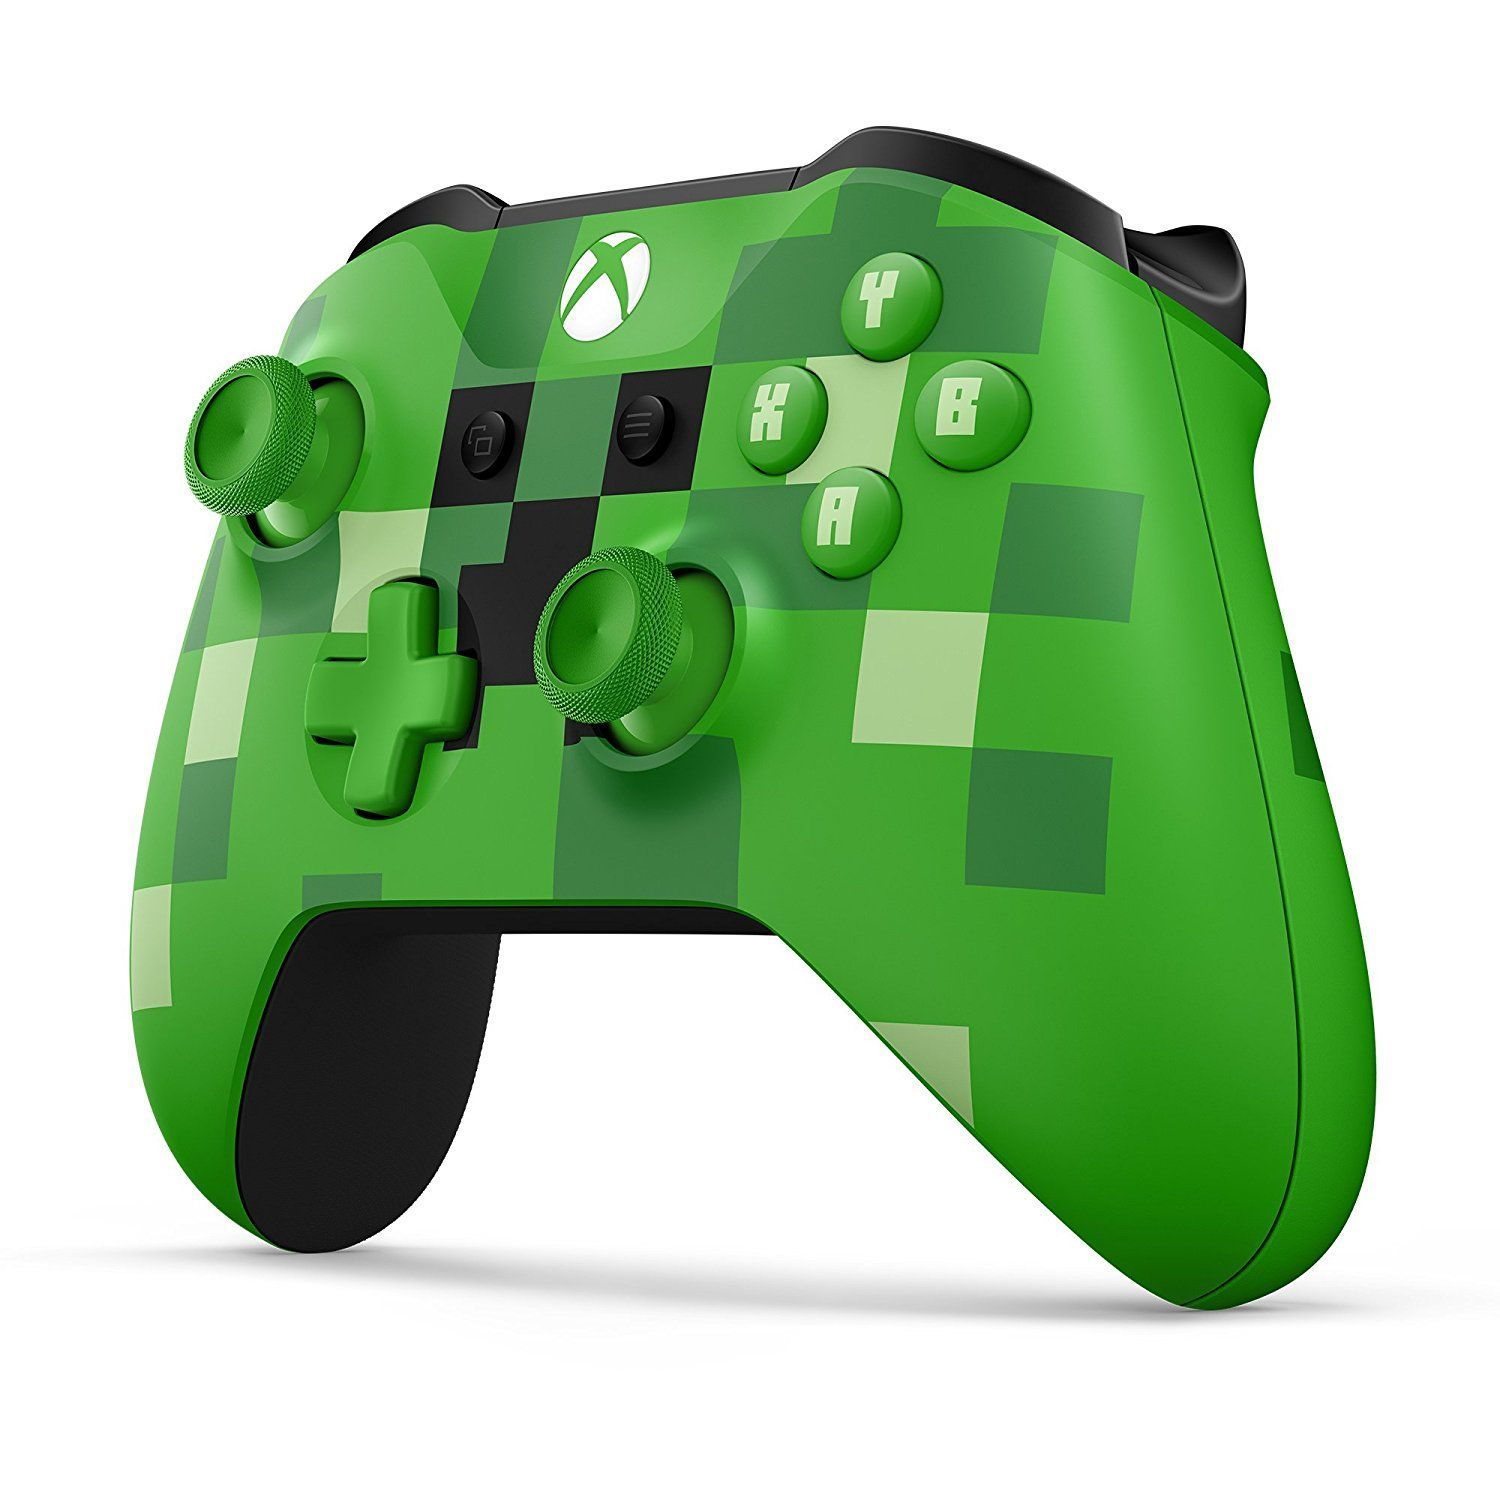 MICROSOFT OFFICIAL XBOX WIRELESS CONTROLLER 3 5-mm Audio Jack